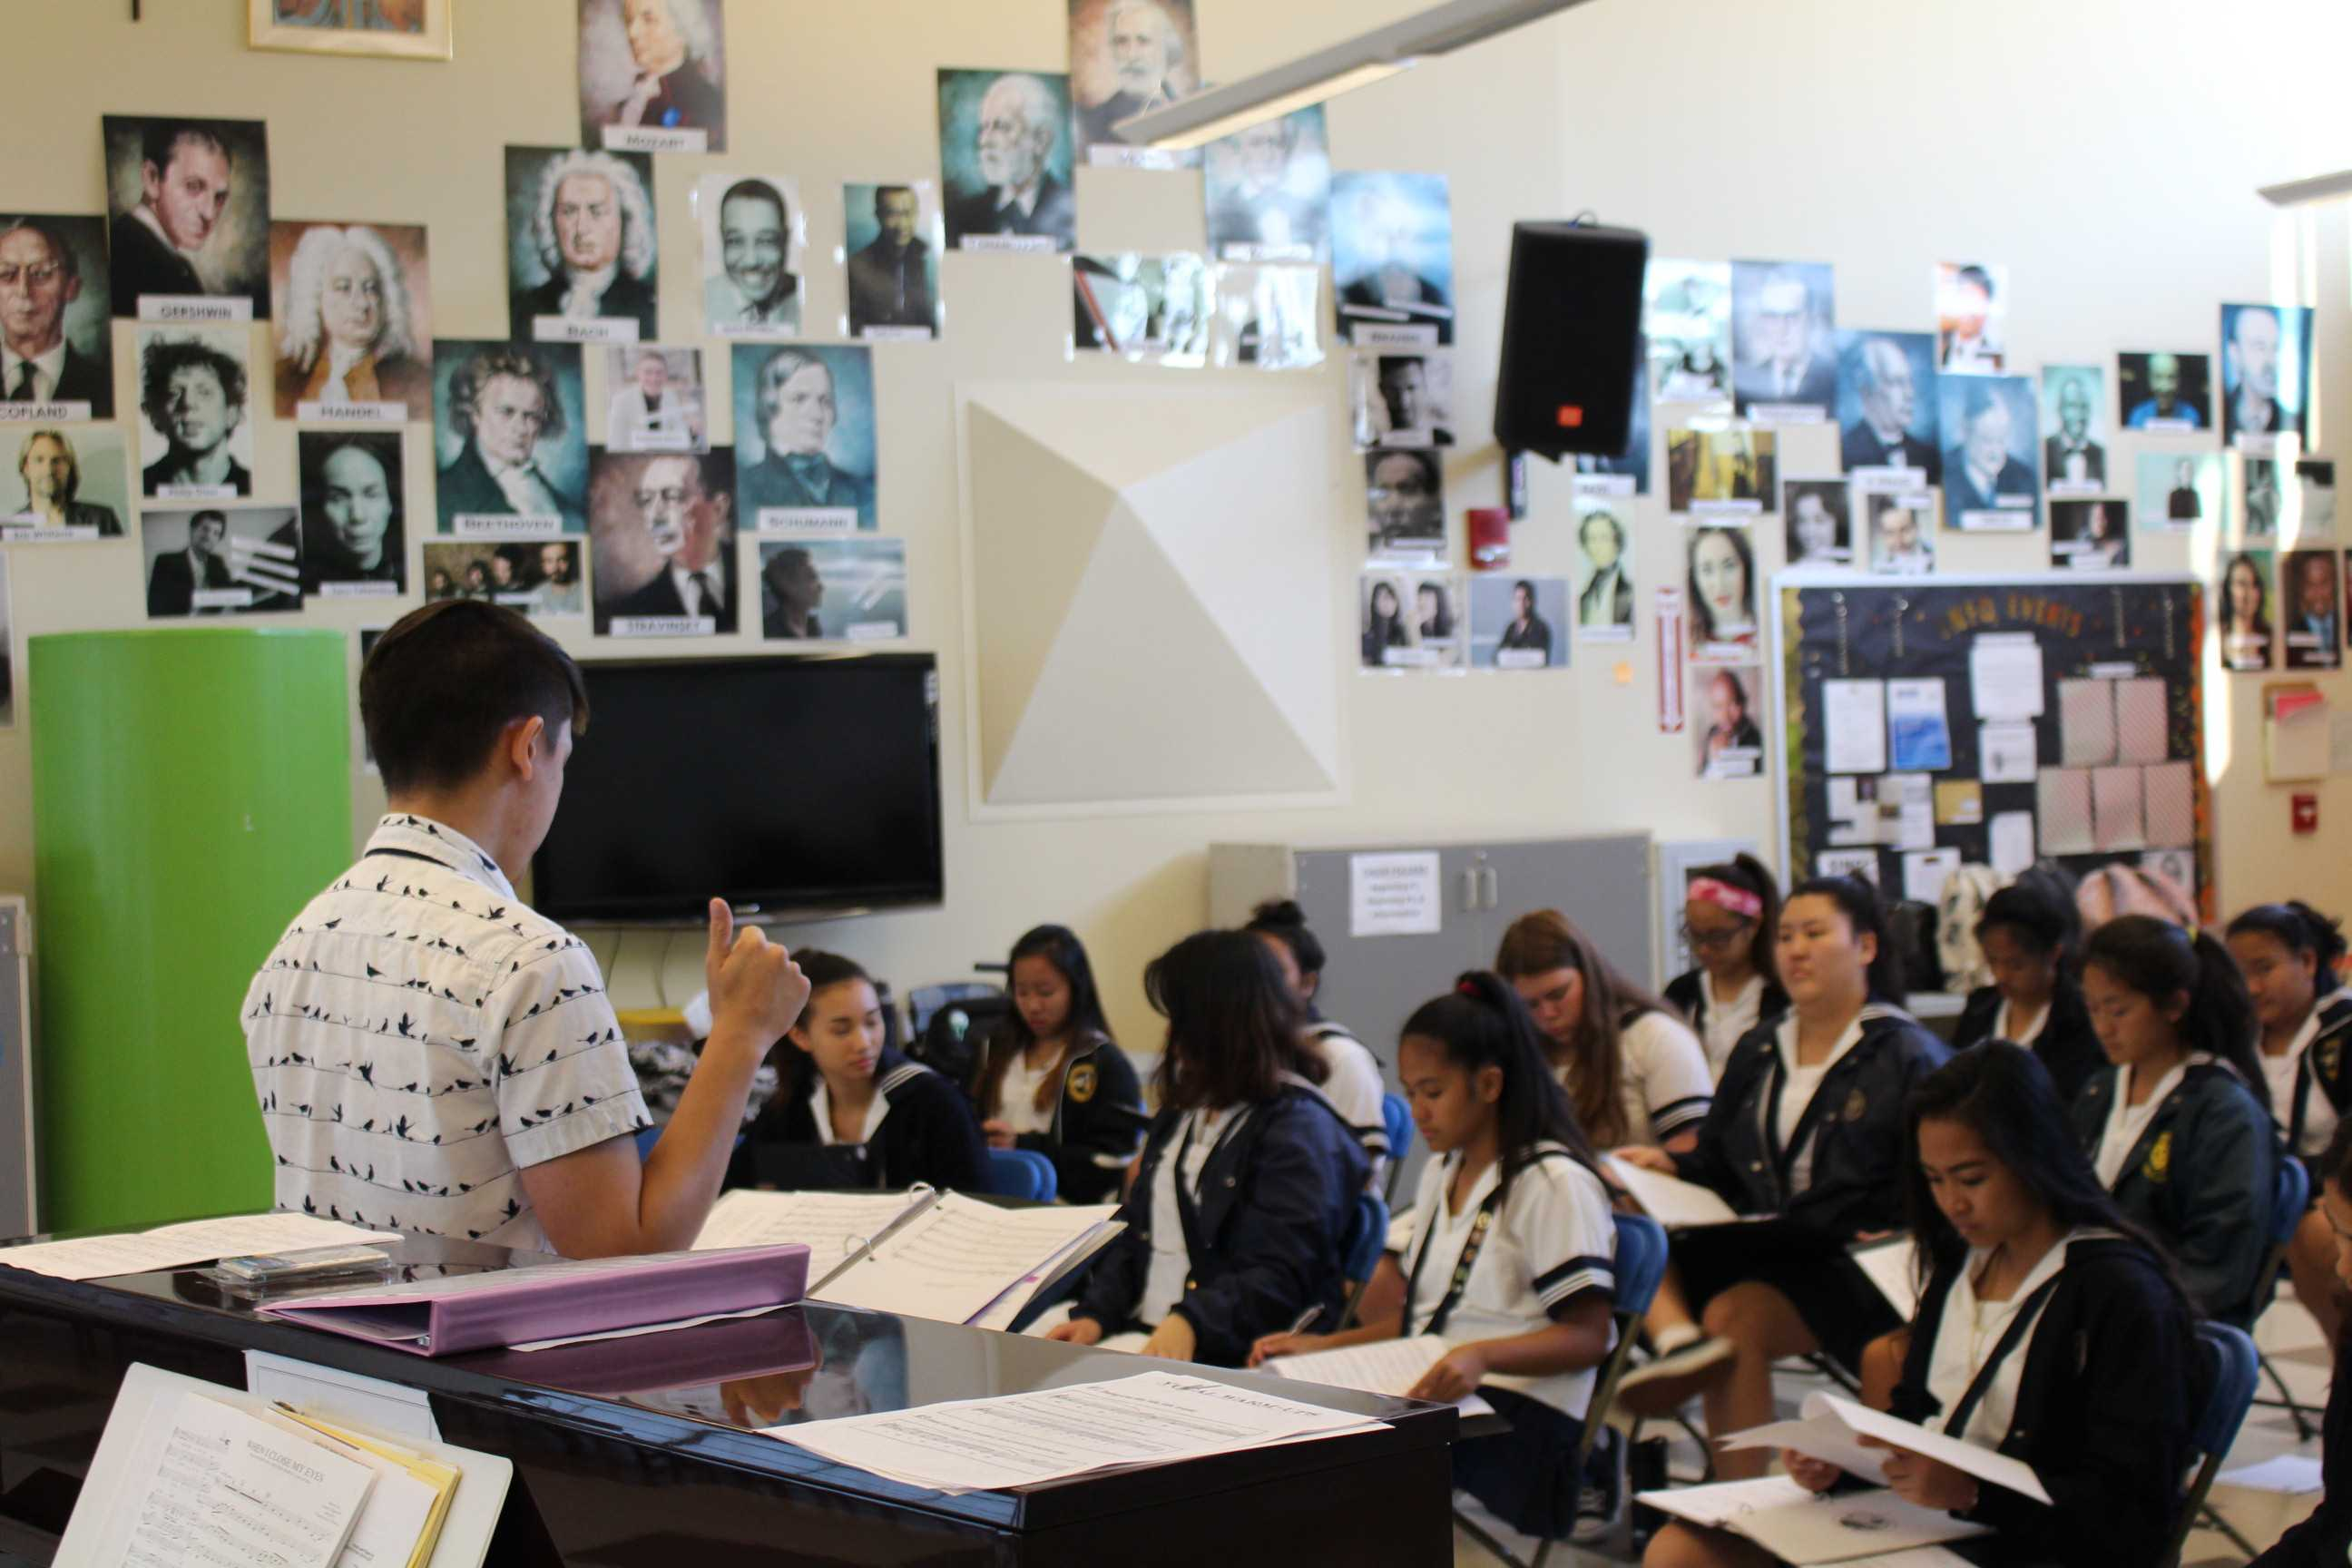 Concert choir students preparing for the Nā Leo Hou: Hawaii All-State Choral Festival. Photos by Rebecca Meyer.